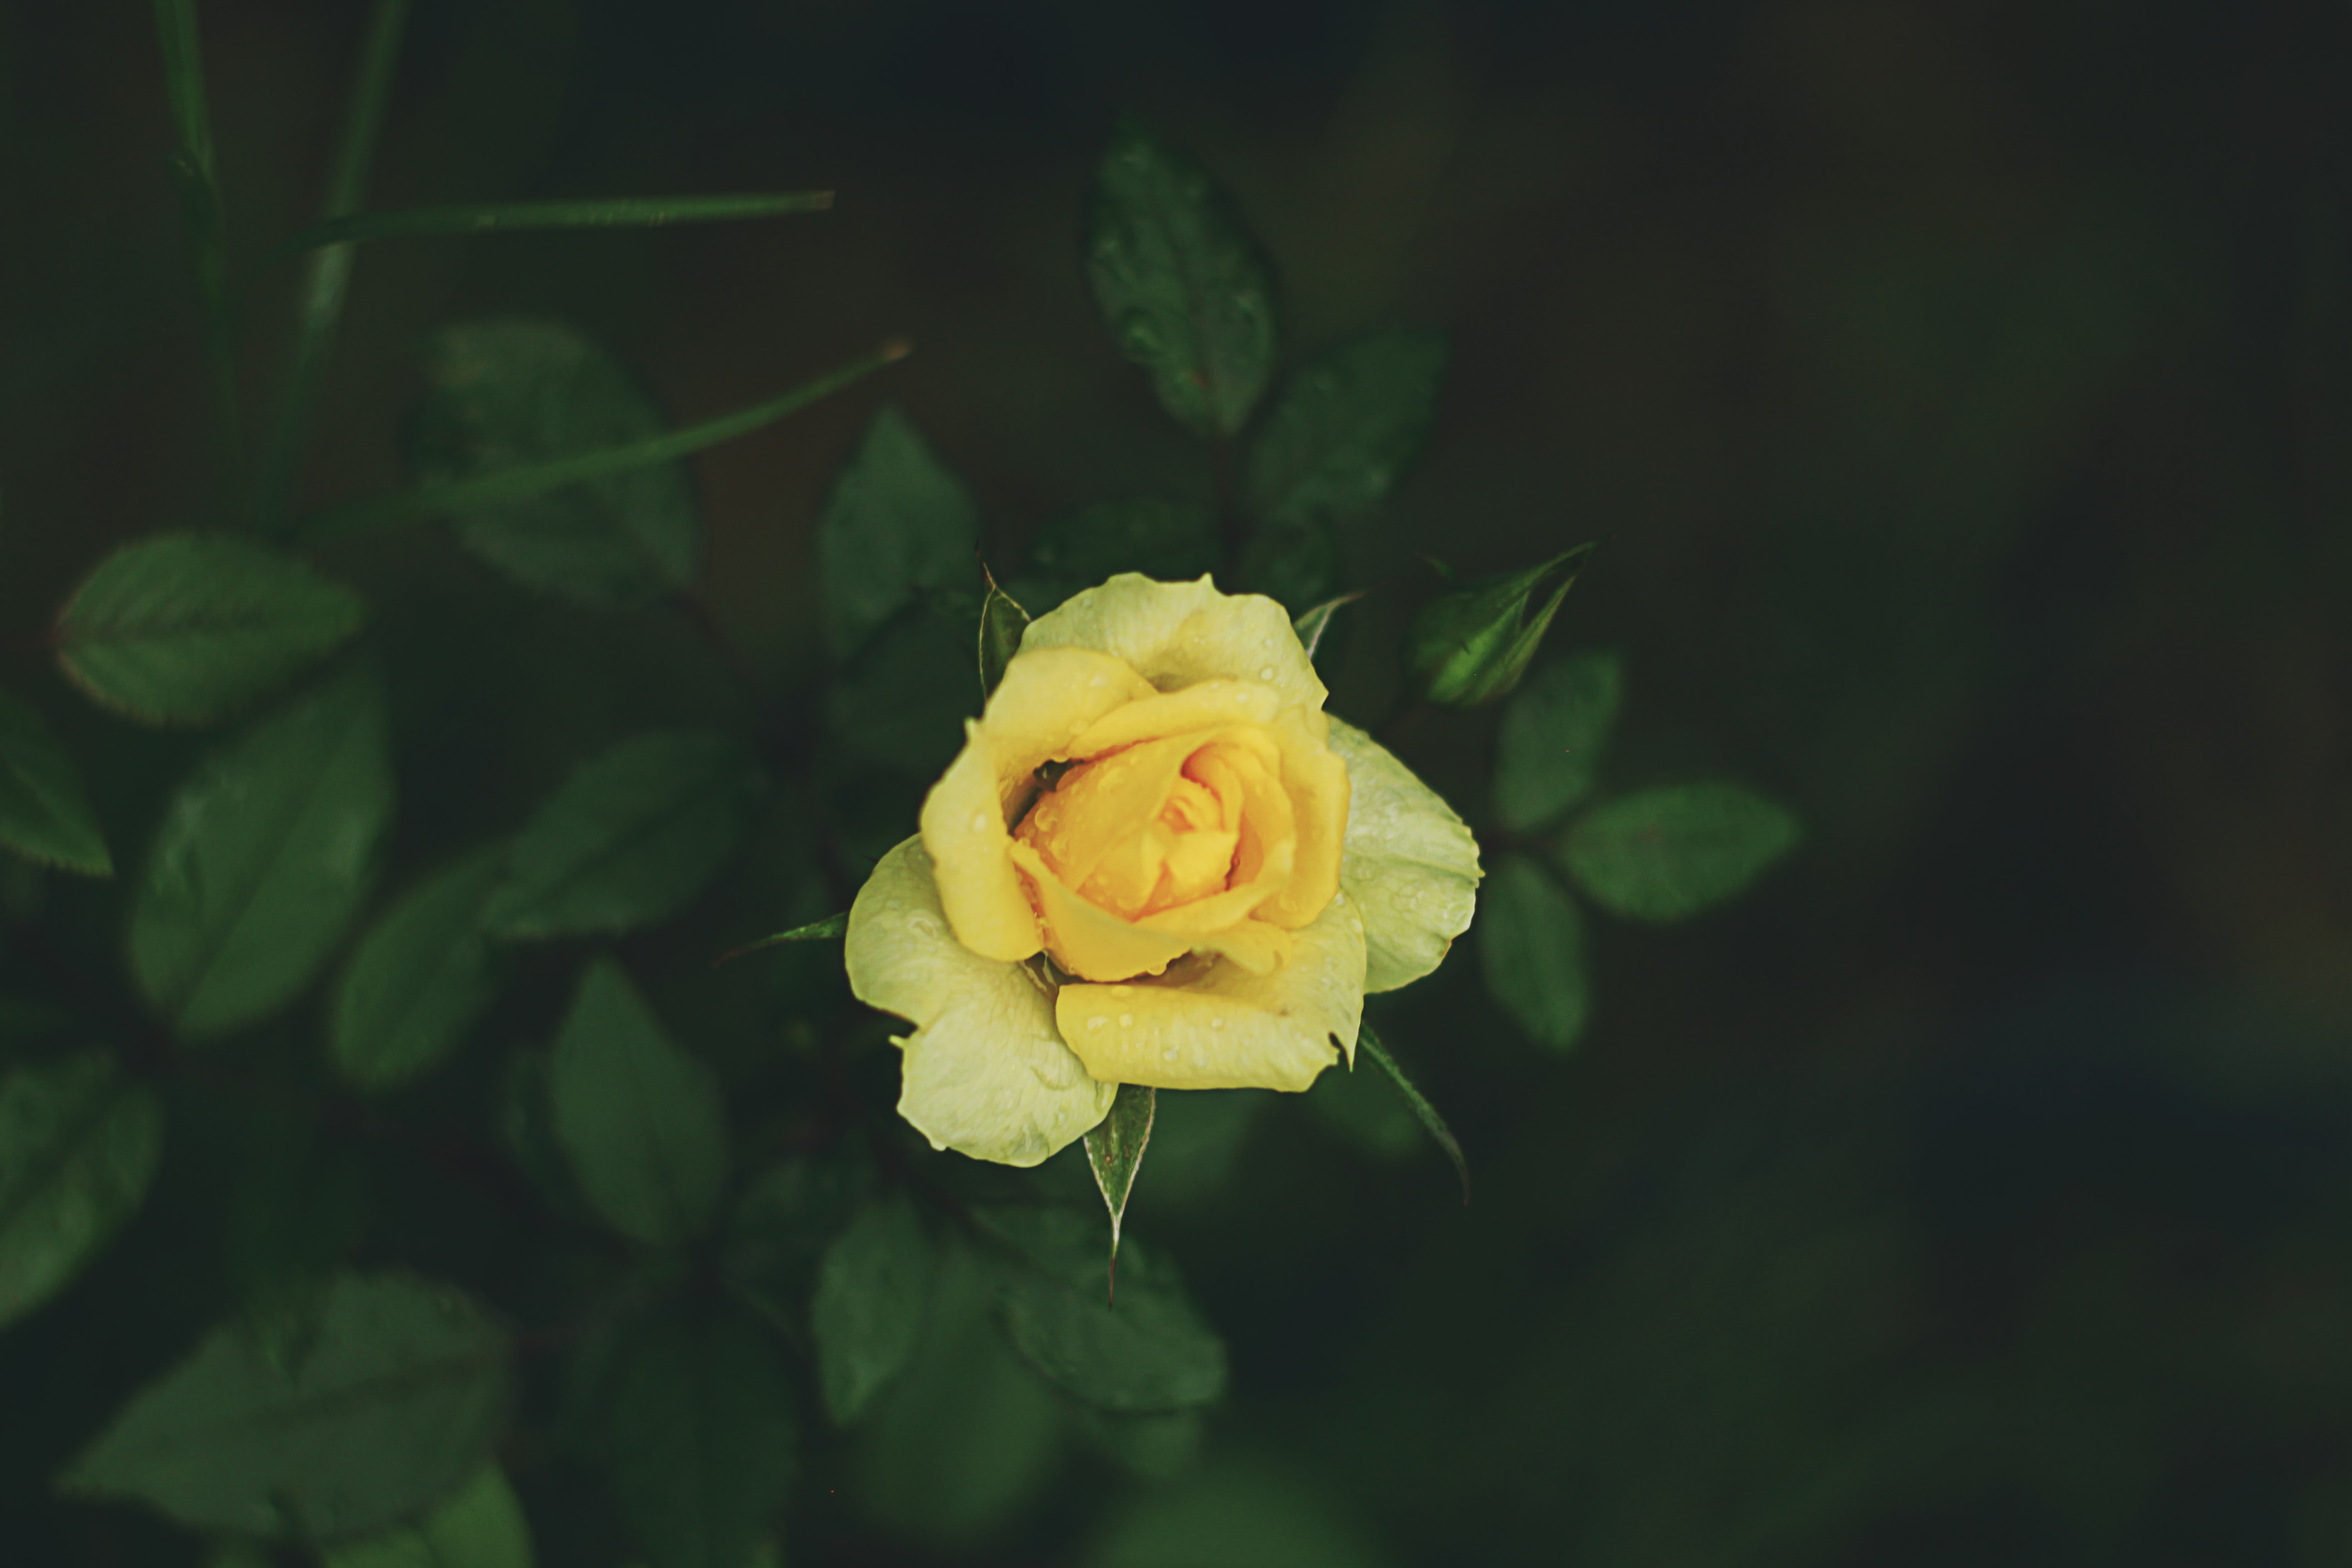 close-up photography yellow rose flower